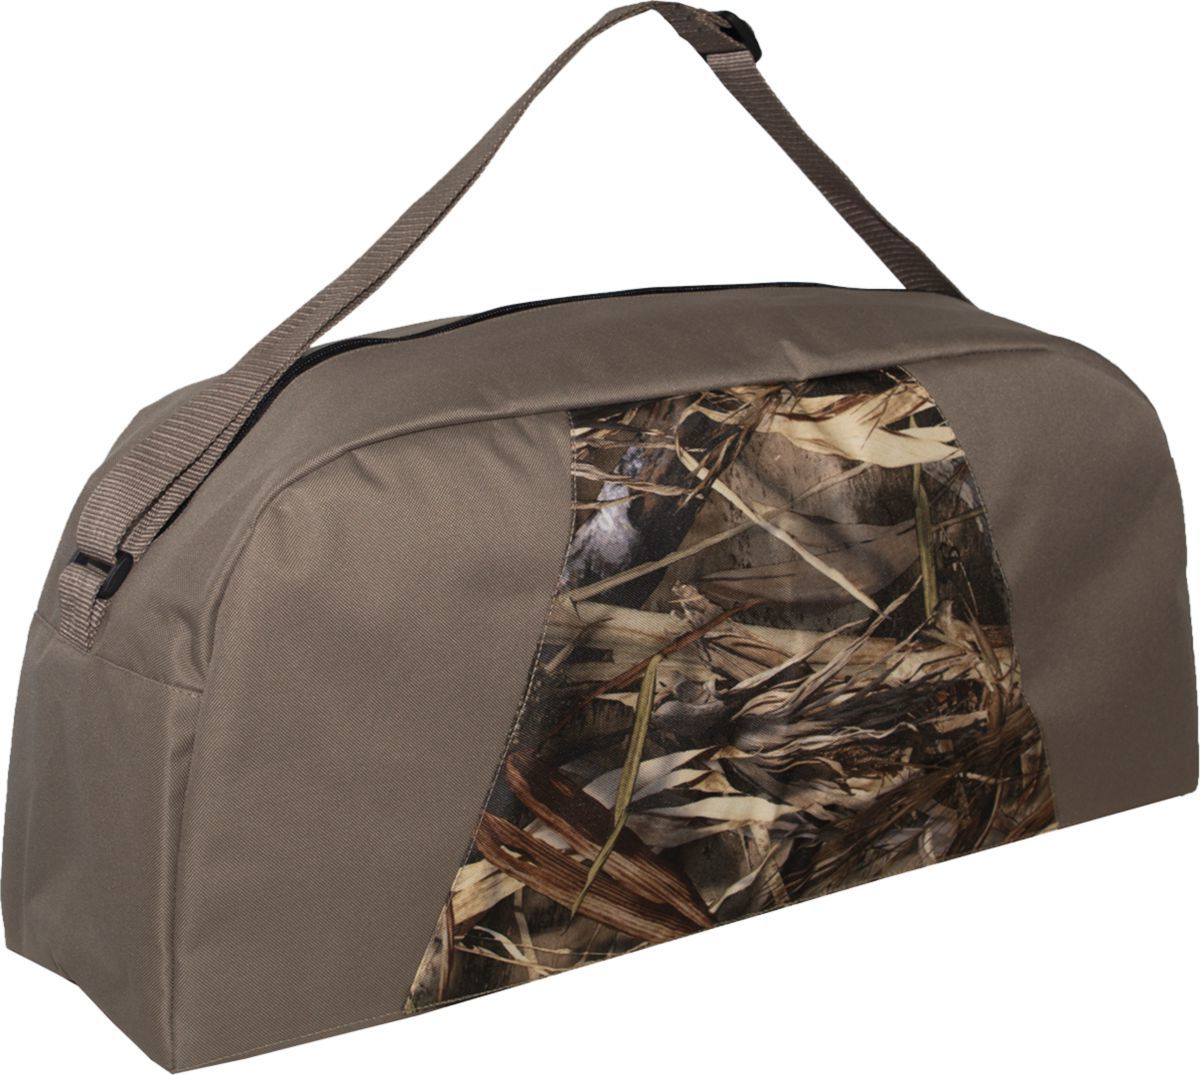 Splash Cool Waterfowl Motorized Decoy Bag